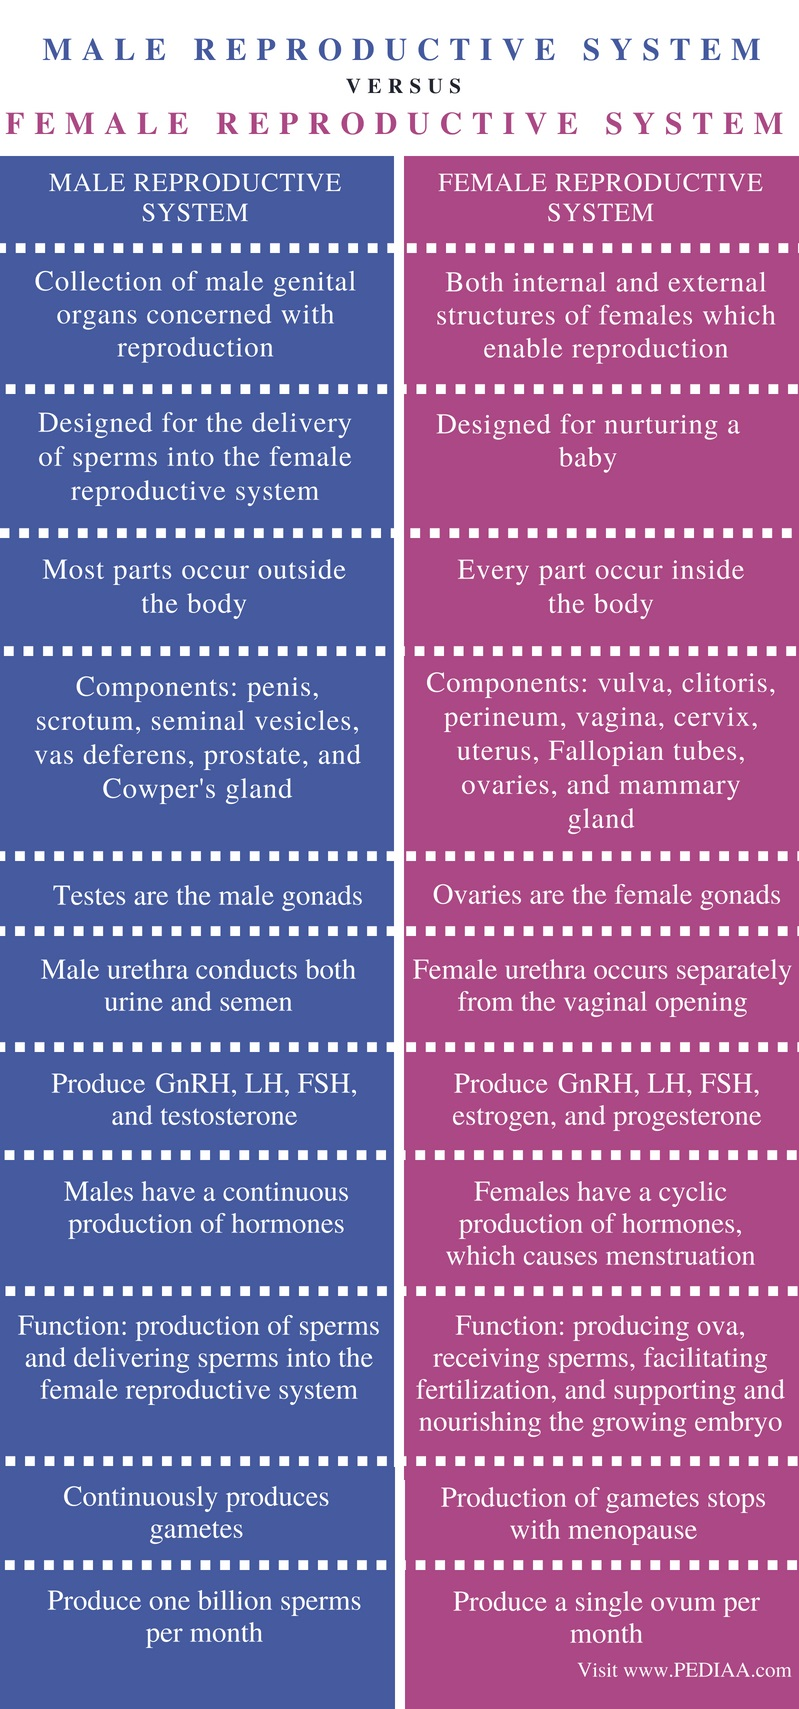 Difference Between Male and Female Reproductive System - Comparison Summary